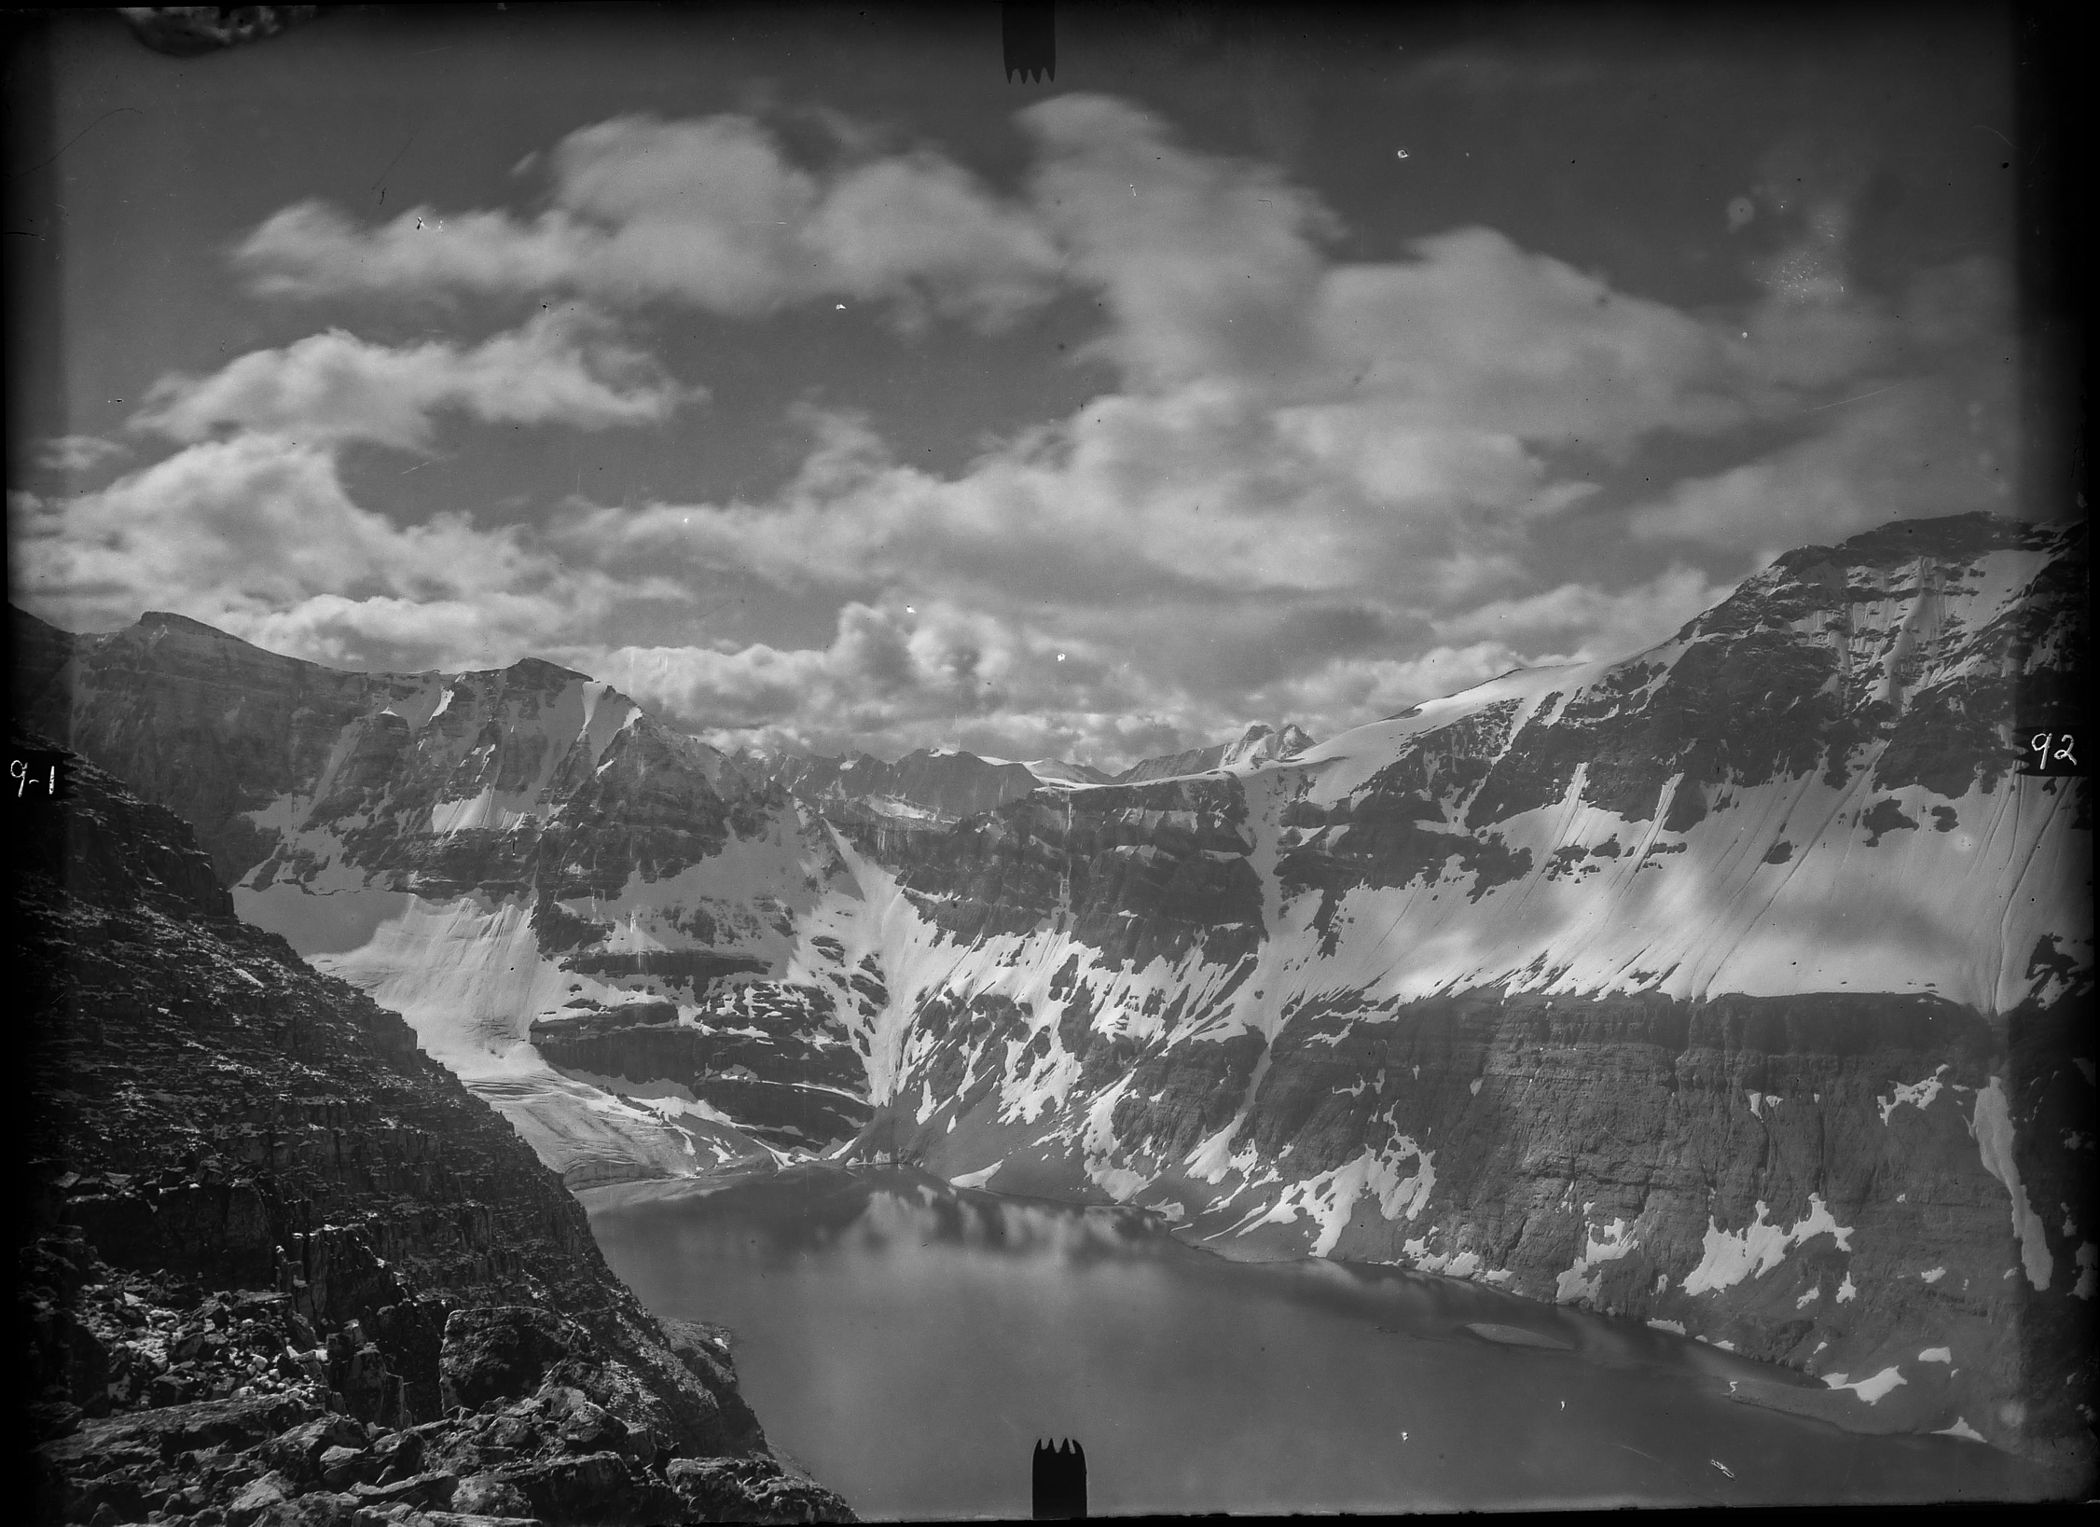 J.J. McArthur, 1892: The view south over Lake McArthur